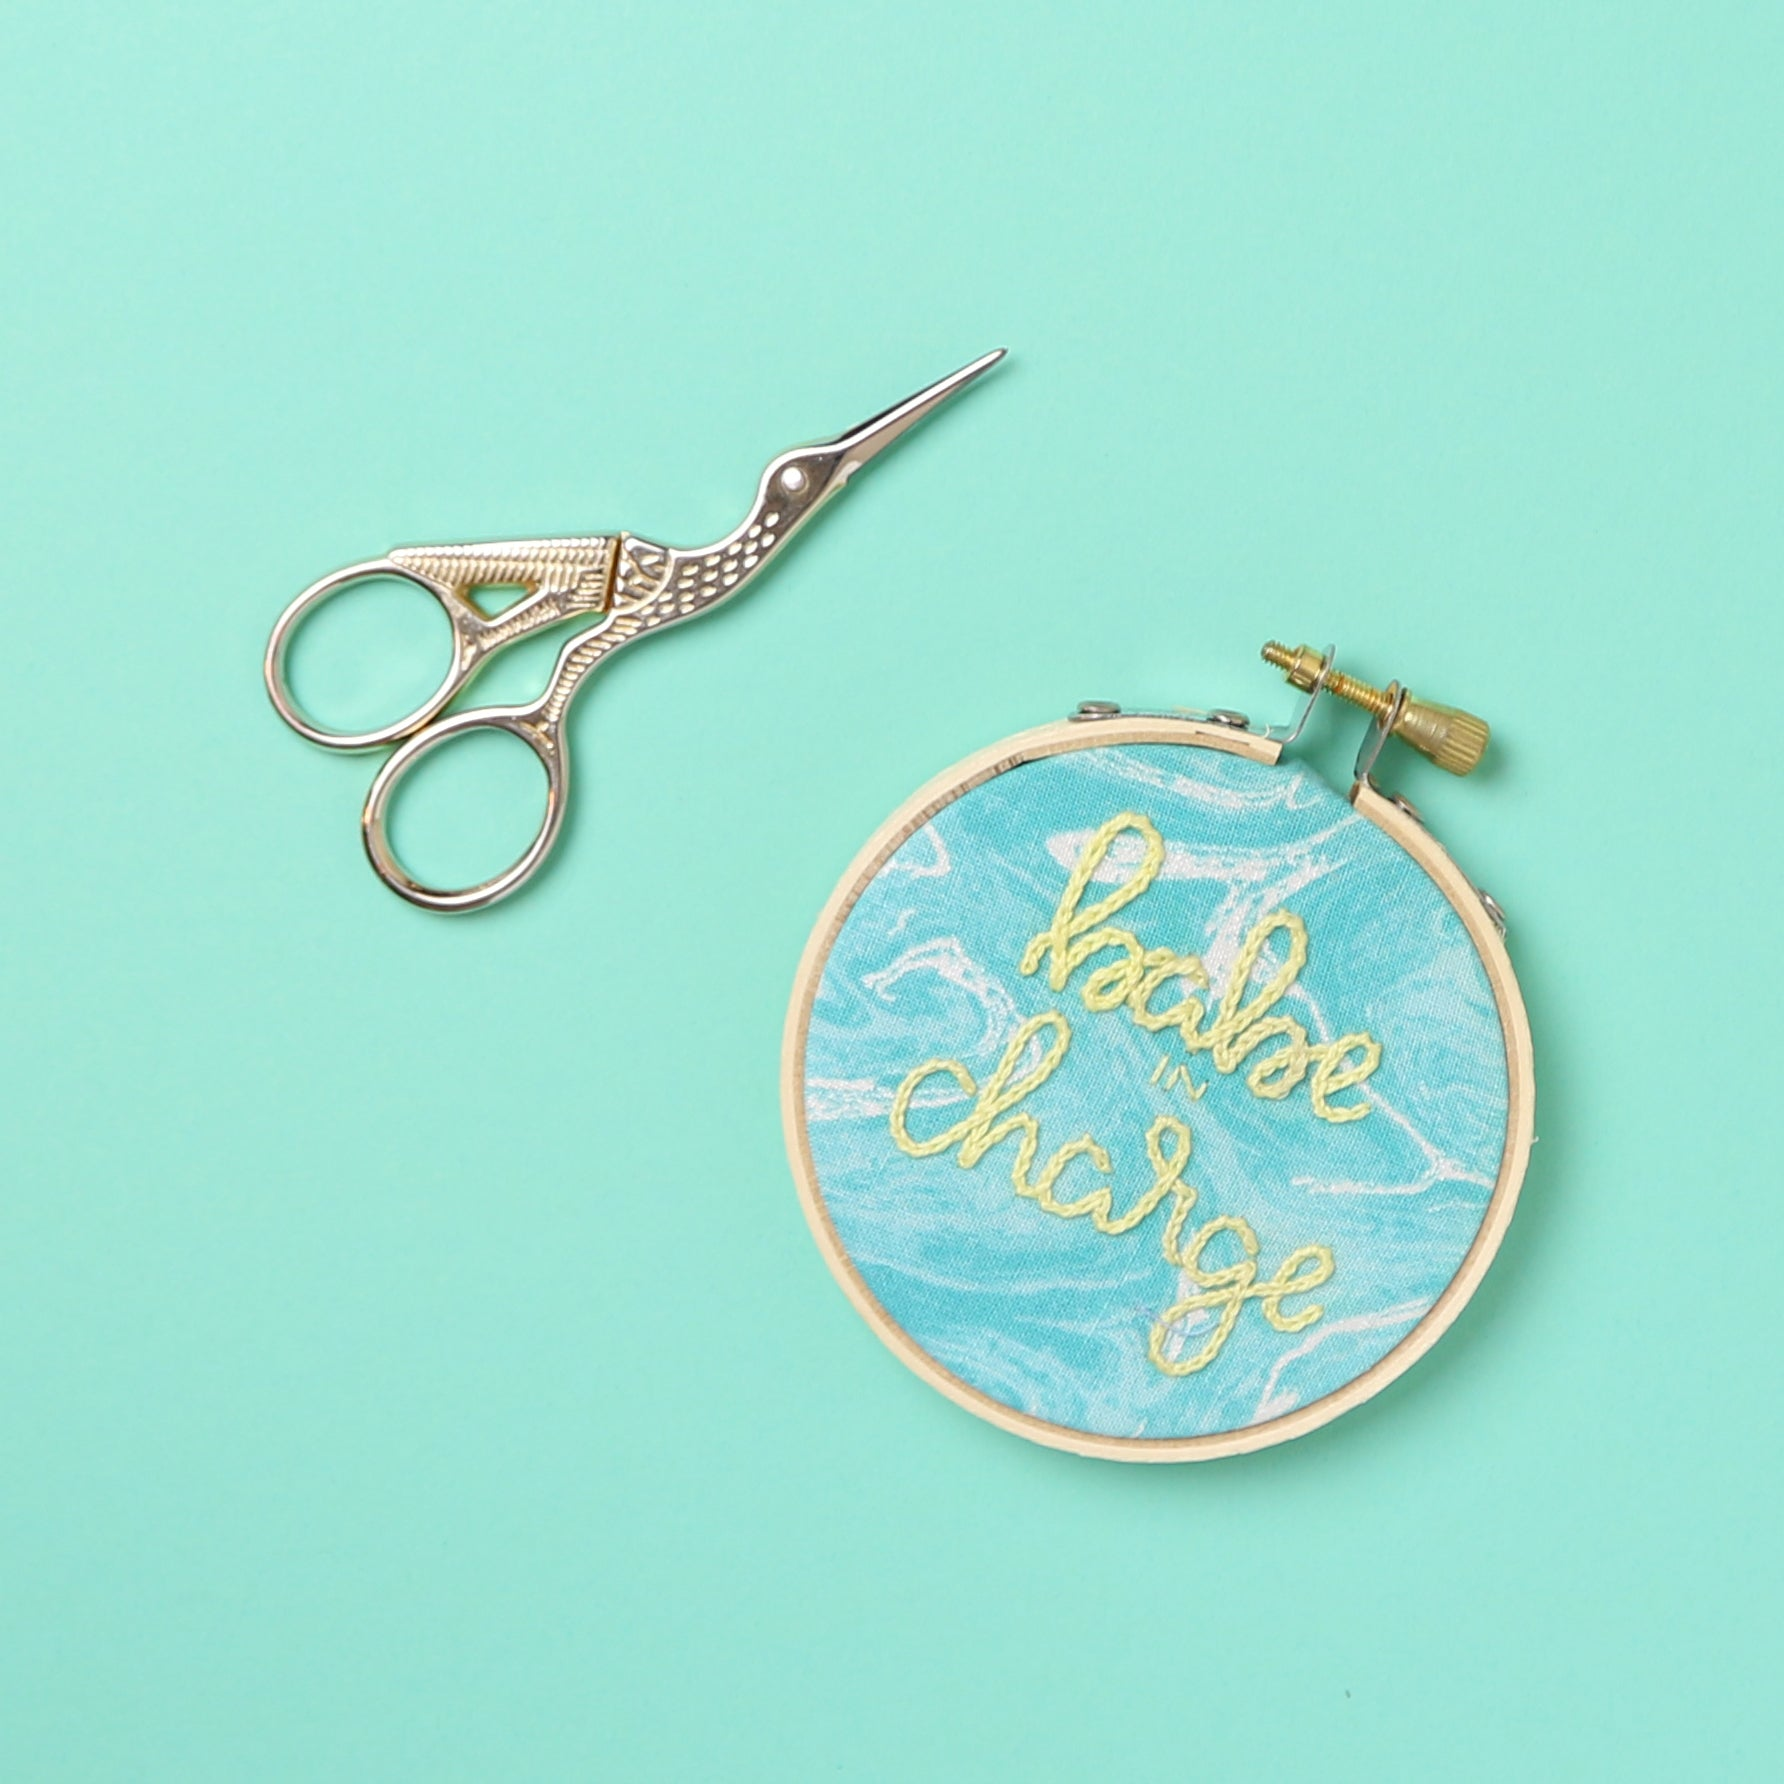 Babe in Charge Embroidery Hoop